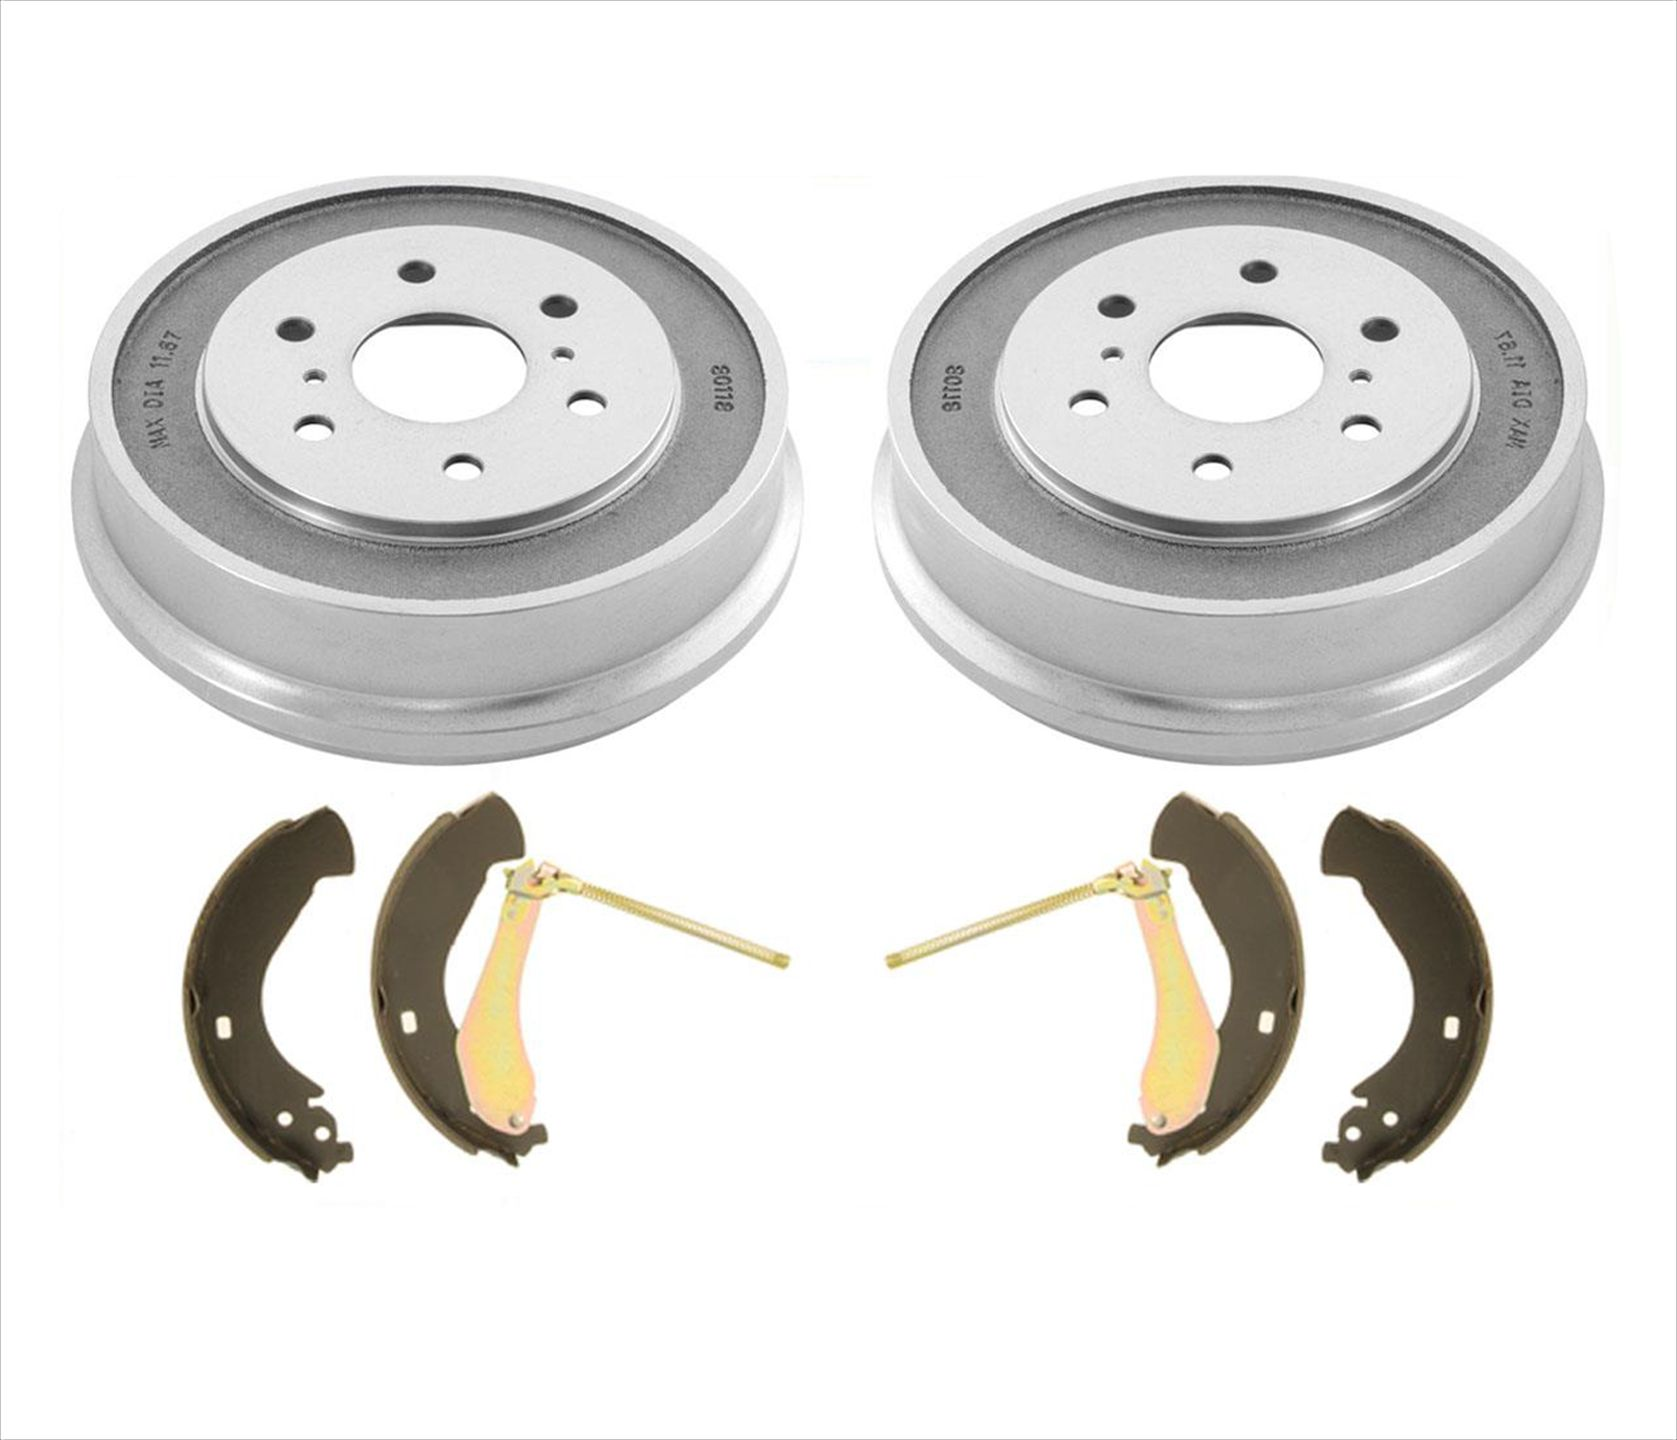 2013 For Toyota Corolla Rear Drum Brake Shoes Set with 2 Years Manufacturer Warranty Both Left and Right